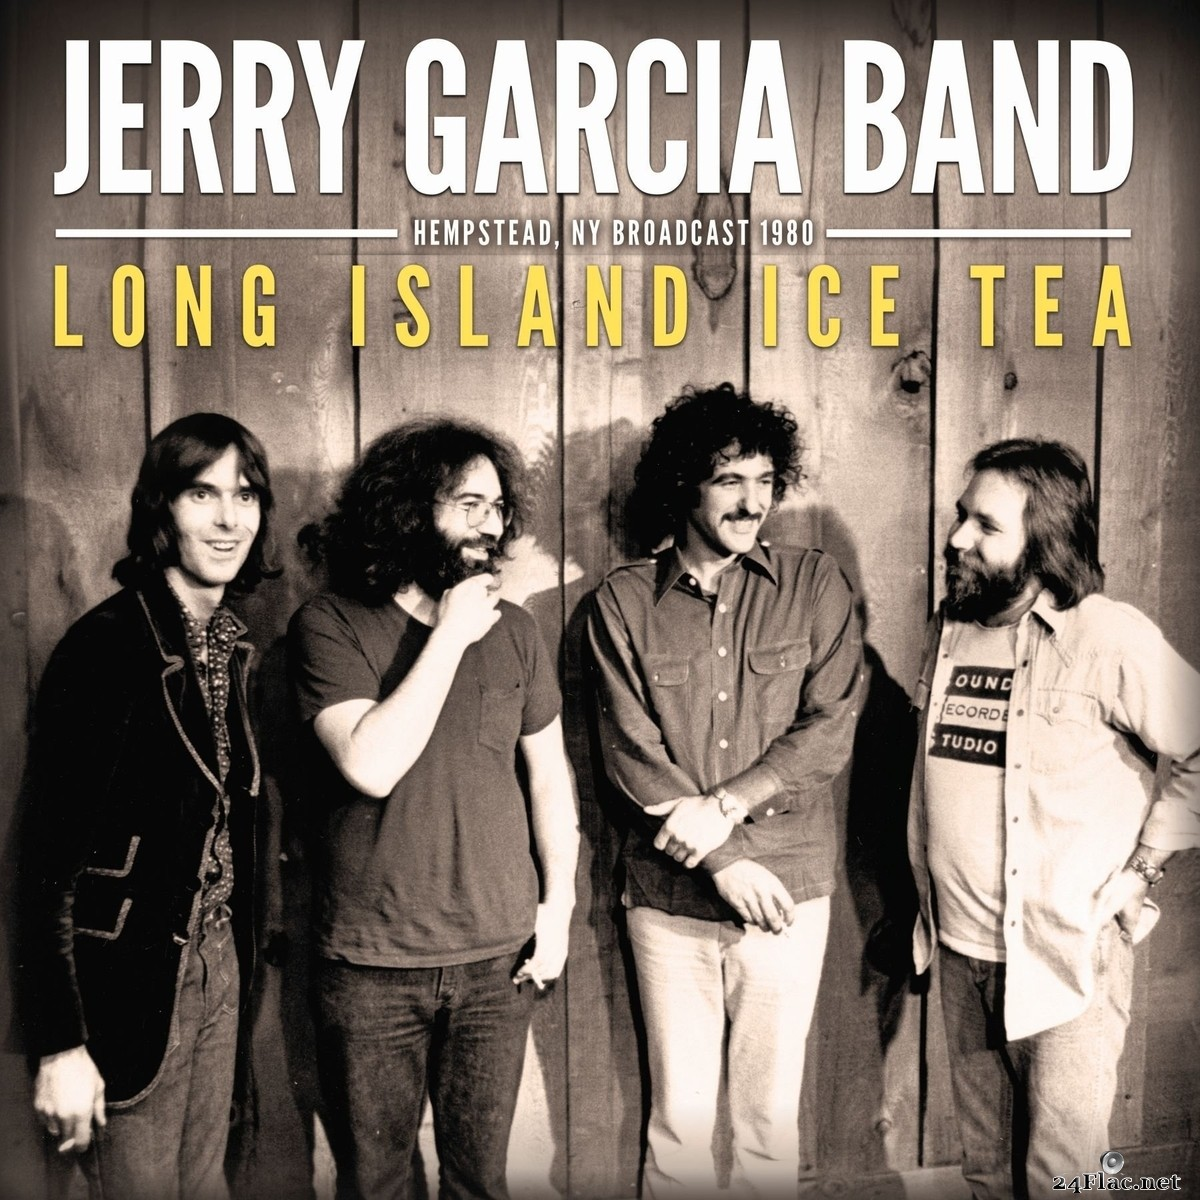 Jerry Garcia Band - Long Island Ice Tea (2021) FLAC